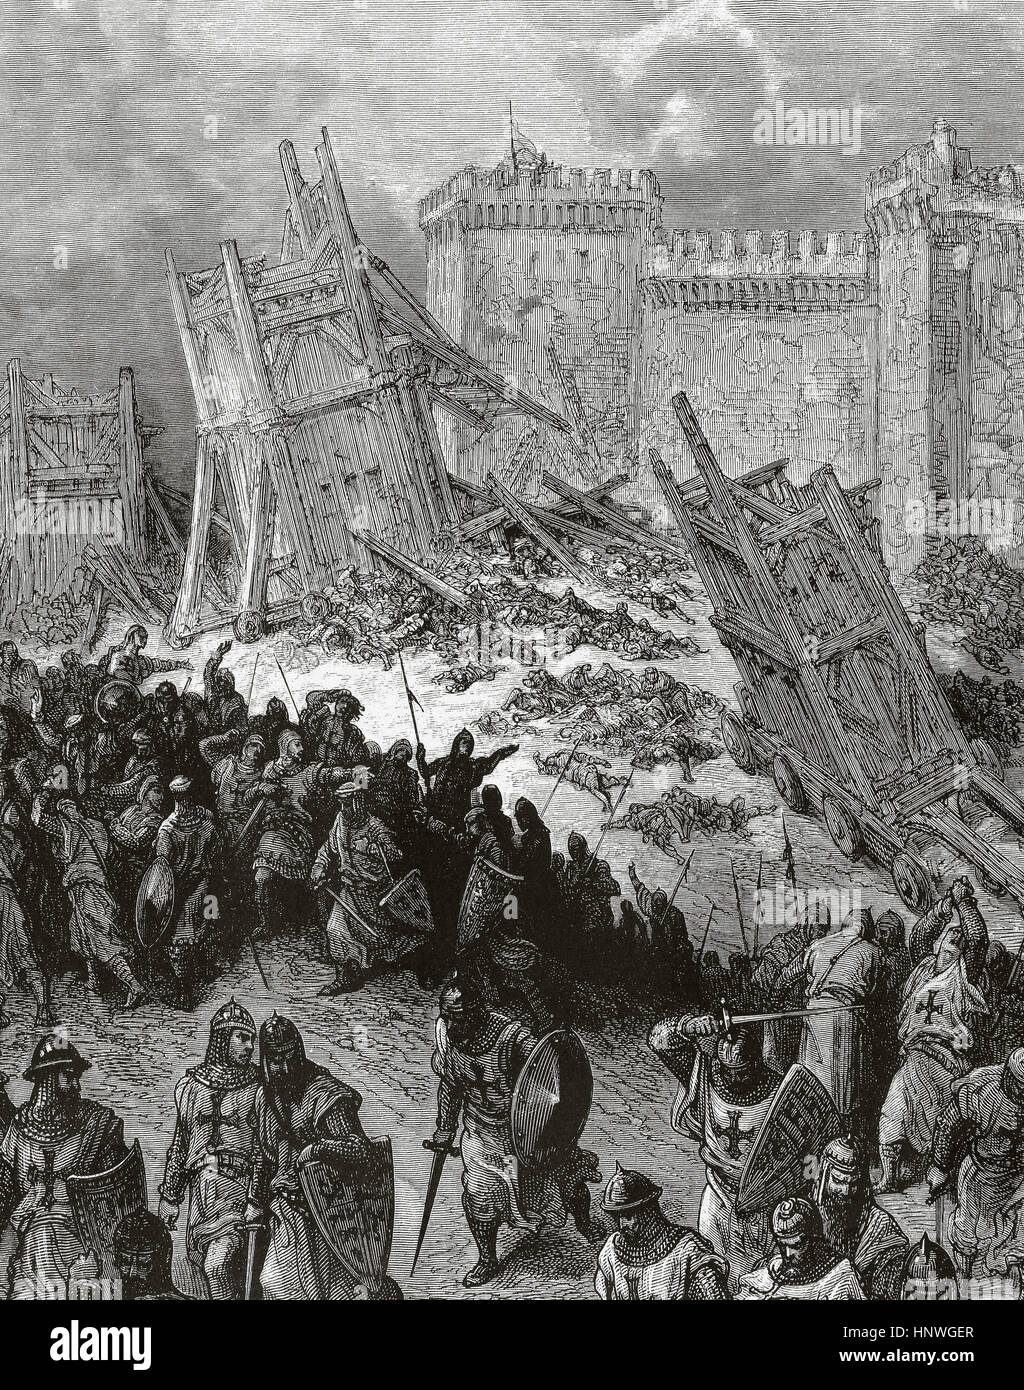 First Crusade (1096-1099). The siege of Antioch. It took place from 21 october, 1097 to 2 June, 1098. Engraving - Stock Image